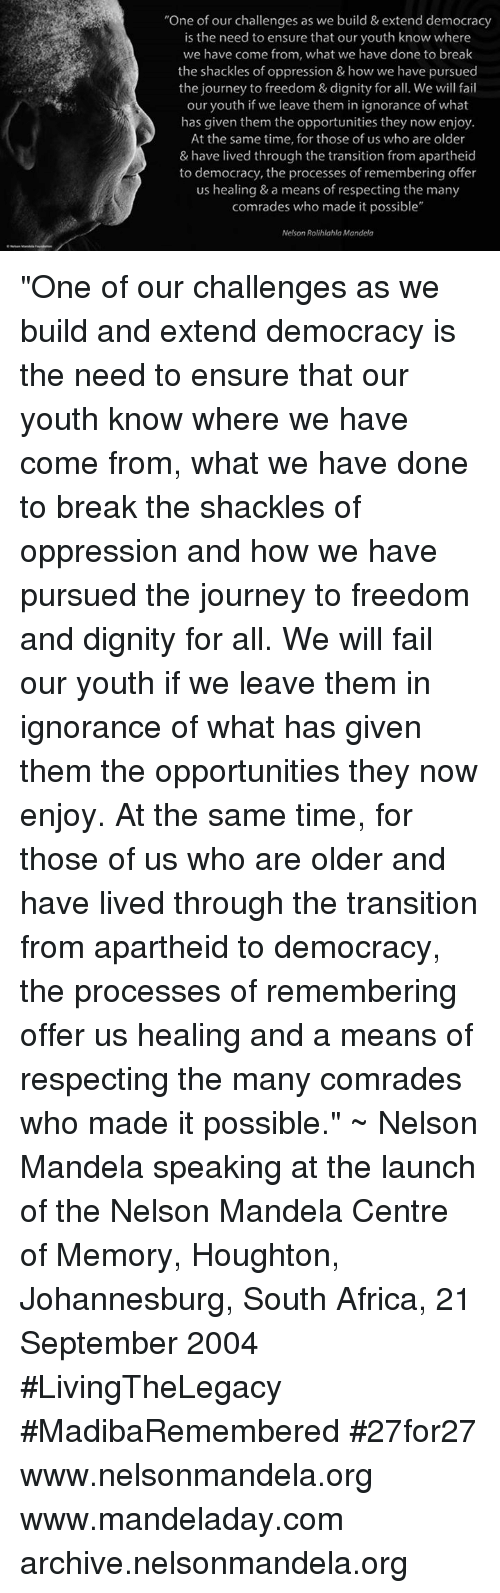 """Apartheid: """"One of our challenges as we build & extend democracy  is the need to ensure that our youth know where  we have come from, what we have done to the shackles of oppression & how we have pursued  the journey to freedom & dignity for all. We will fail  our youth if we leave them in ignorance of what  has given them the opportunities they now enjoy  At the same time, for those of us who are older  & have lived through the transition from apartheid  to democracy, the processes of remembering offer  us healing & a means of respecting the many  comrades who made it possible""""  Nelson Rolihlahla Mandela """"One of our challenges as we build and extend democracy is the need to ensure that our youth know where we have come from, what we have done to break the shackles of oppression and how we have pursued the journey to freedom and dignity for all. We will fail our youth if we leave them in ignorance of what has given them the opportunities they now enjoy. At the same time, for those of us who are older and have lived through the transition from apartheid to democracy, the processes of remembering offer us healing and a means of respecting the many comrades who made it possible."""" ~ Nelson Mandela speaking at the launch of the Nelson Mandela Centre of Memory, Houghton, Johannesburg, South Africa, 21 September 2004 #LivingTheLegacy #MadibaRemembered #27for27   www.nelsonmandela.org www.mandeladay.com archive.nelsonmandela.org"""